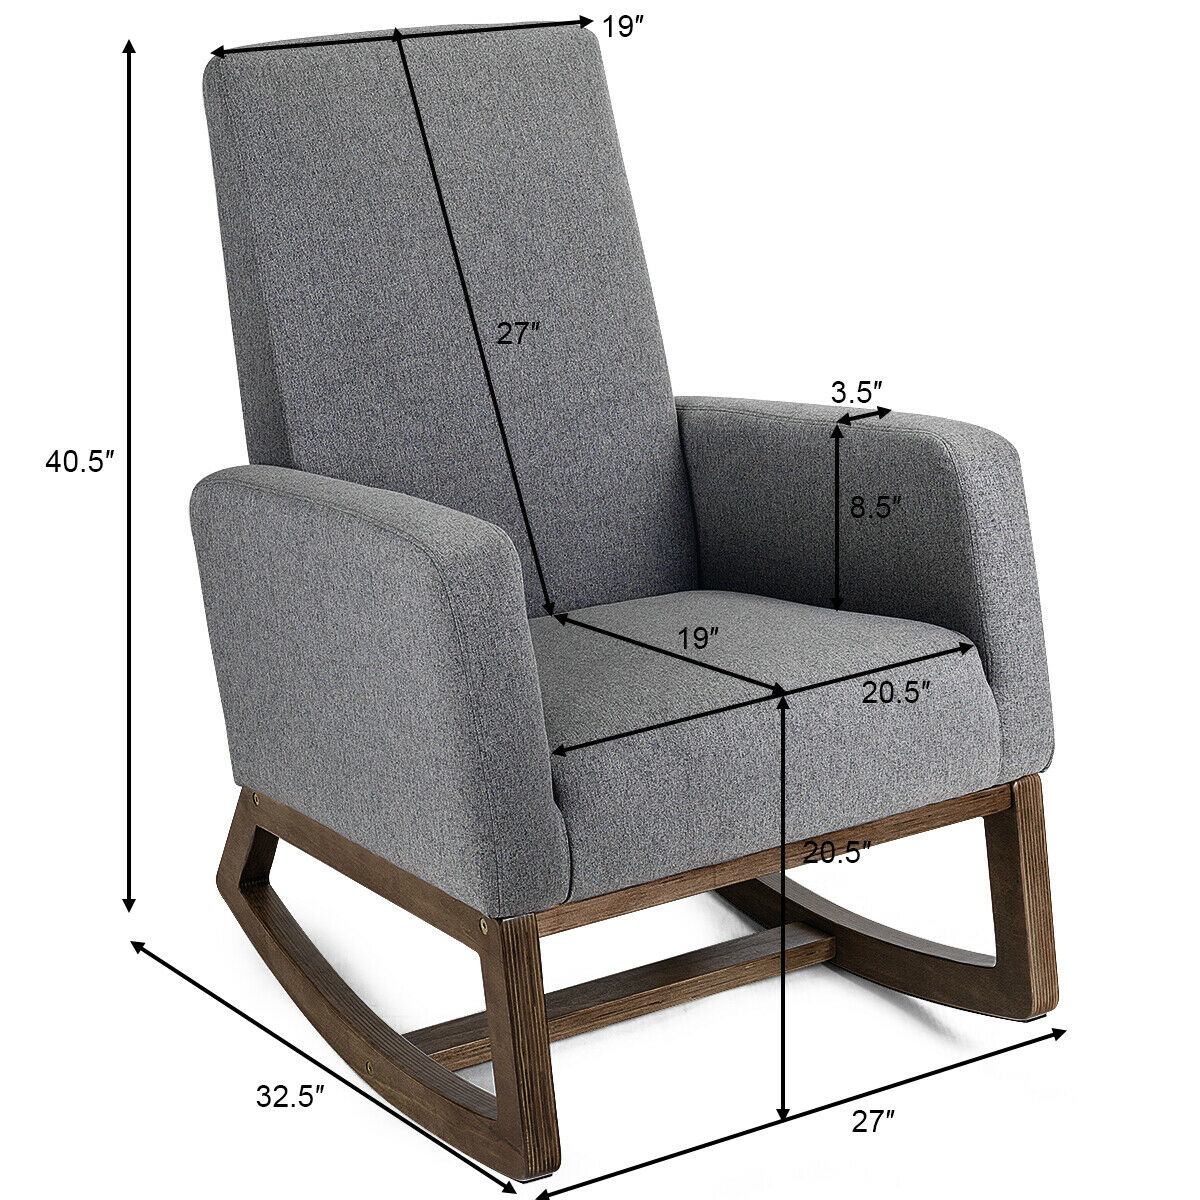 Costway: Costway Mid Century Retro Modern Fabric Upholstered Rocking Chair Relax Rocker Gray | Rakuten Throughout Mid Century Modern Fabric Rocking Chairs (View 18 of 20)